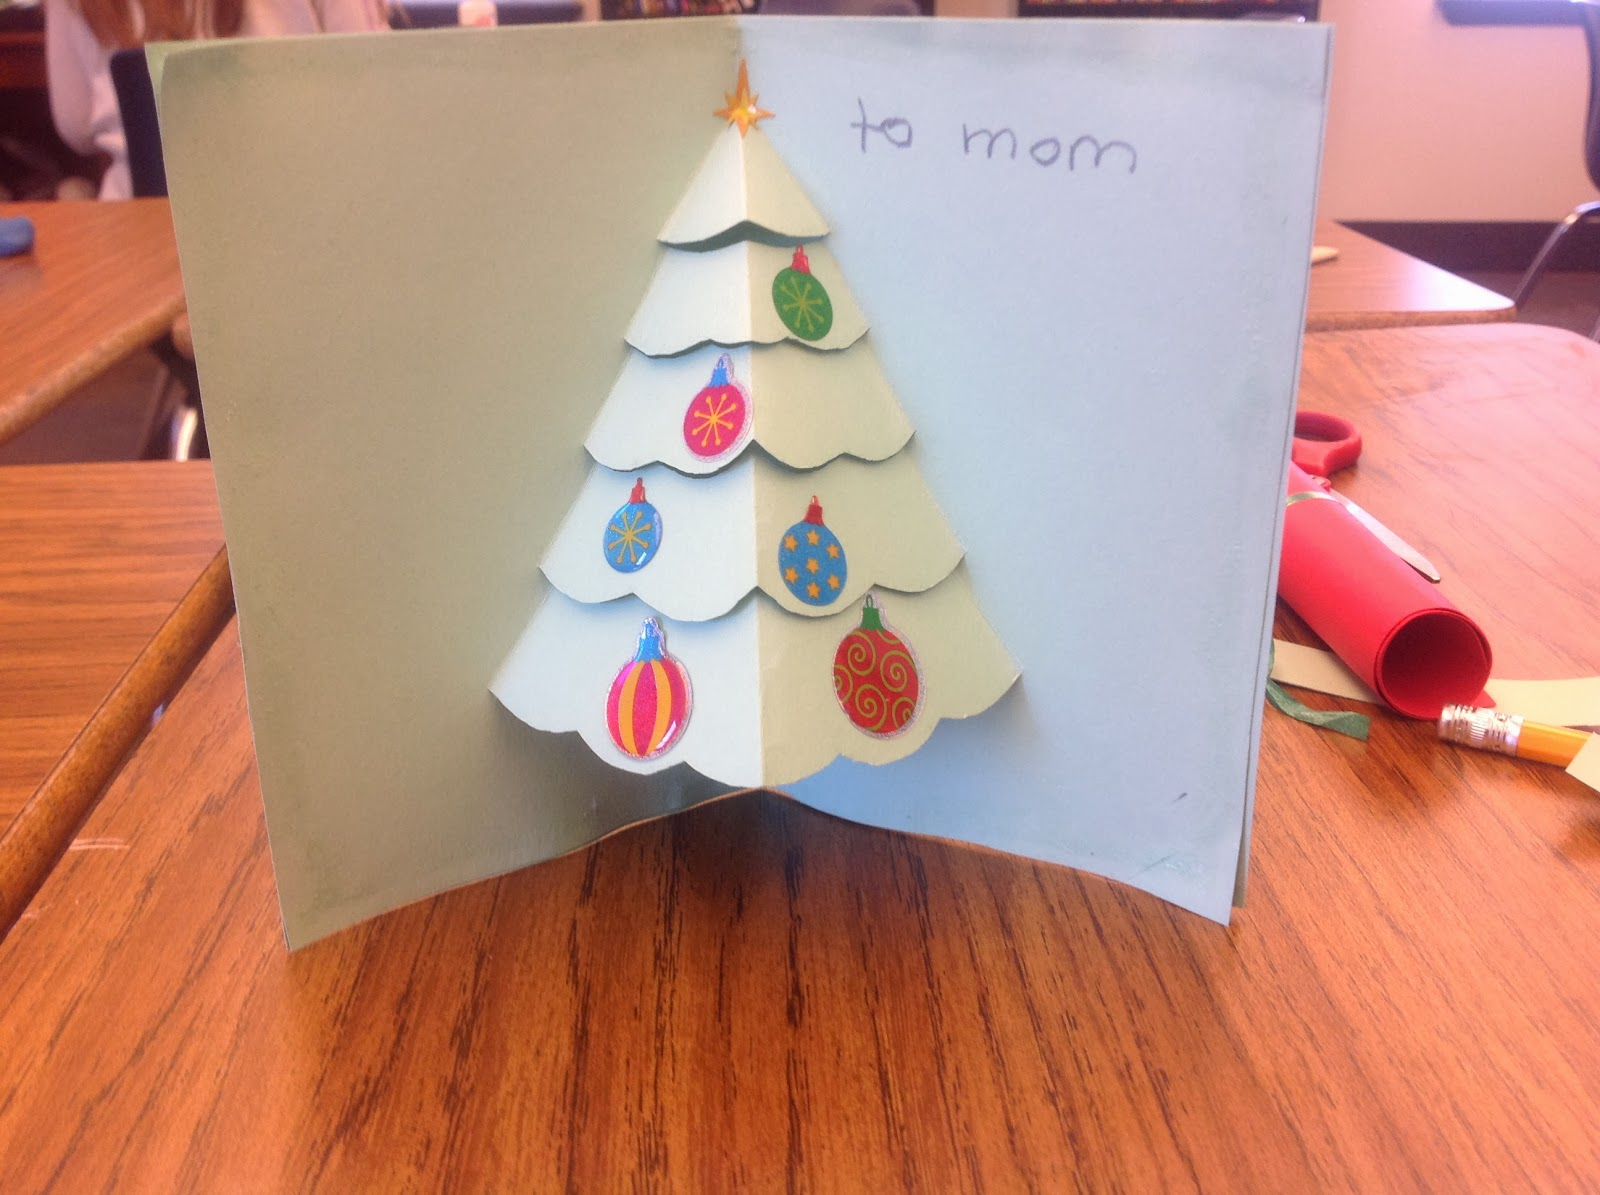 Puddle wonderful learning diy pop up christmas card today we made the cutest christmas cards at school i love pop up books and i was so excited to find this tutorial for making christmas cards in the style solutioingenieria Gallery